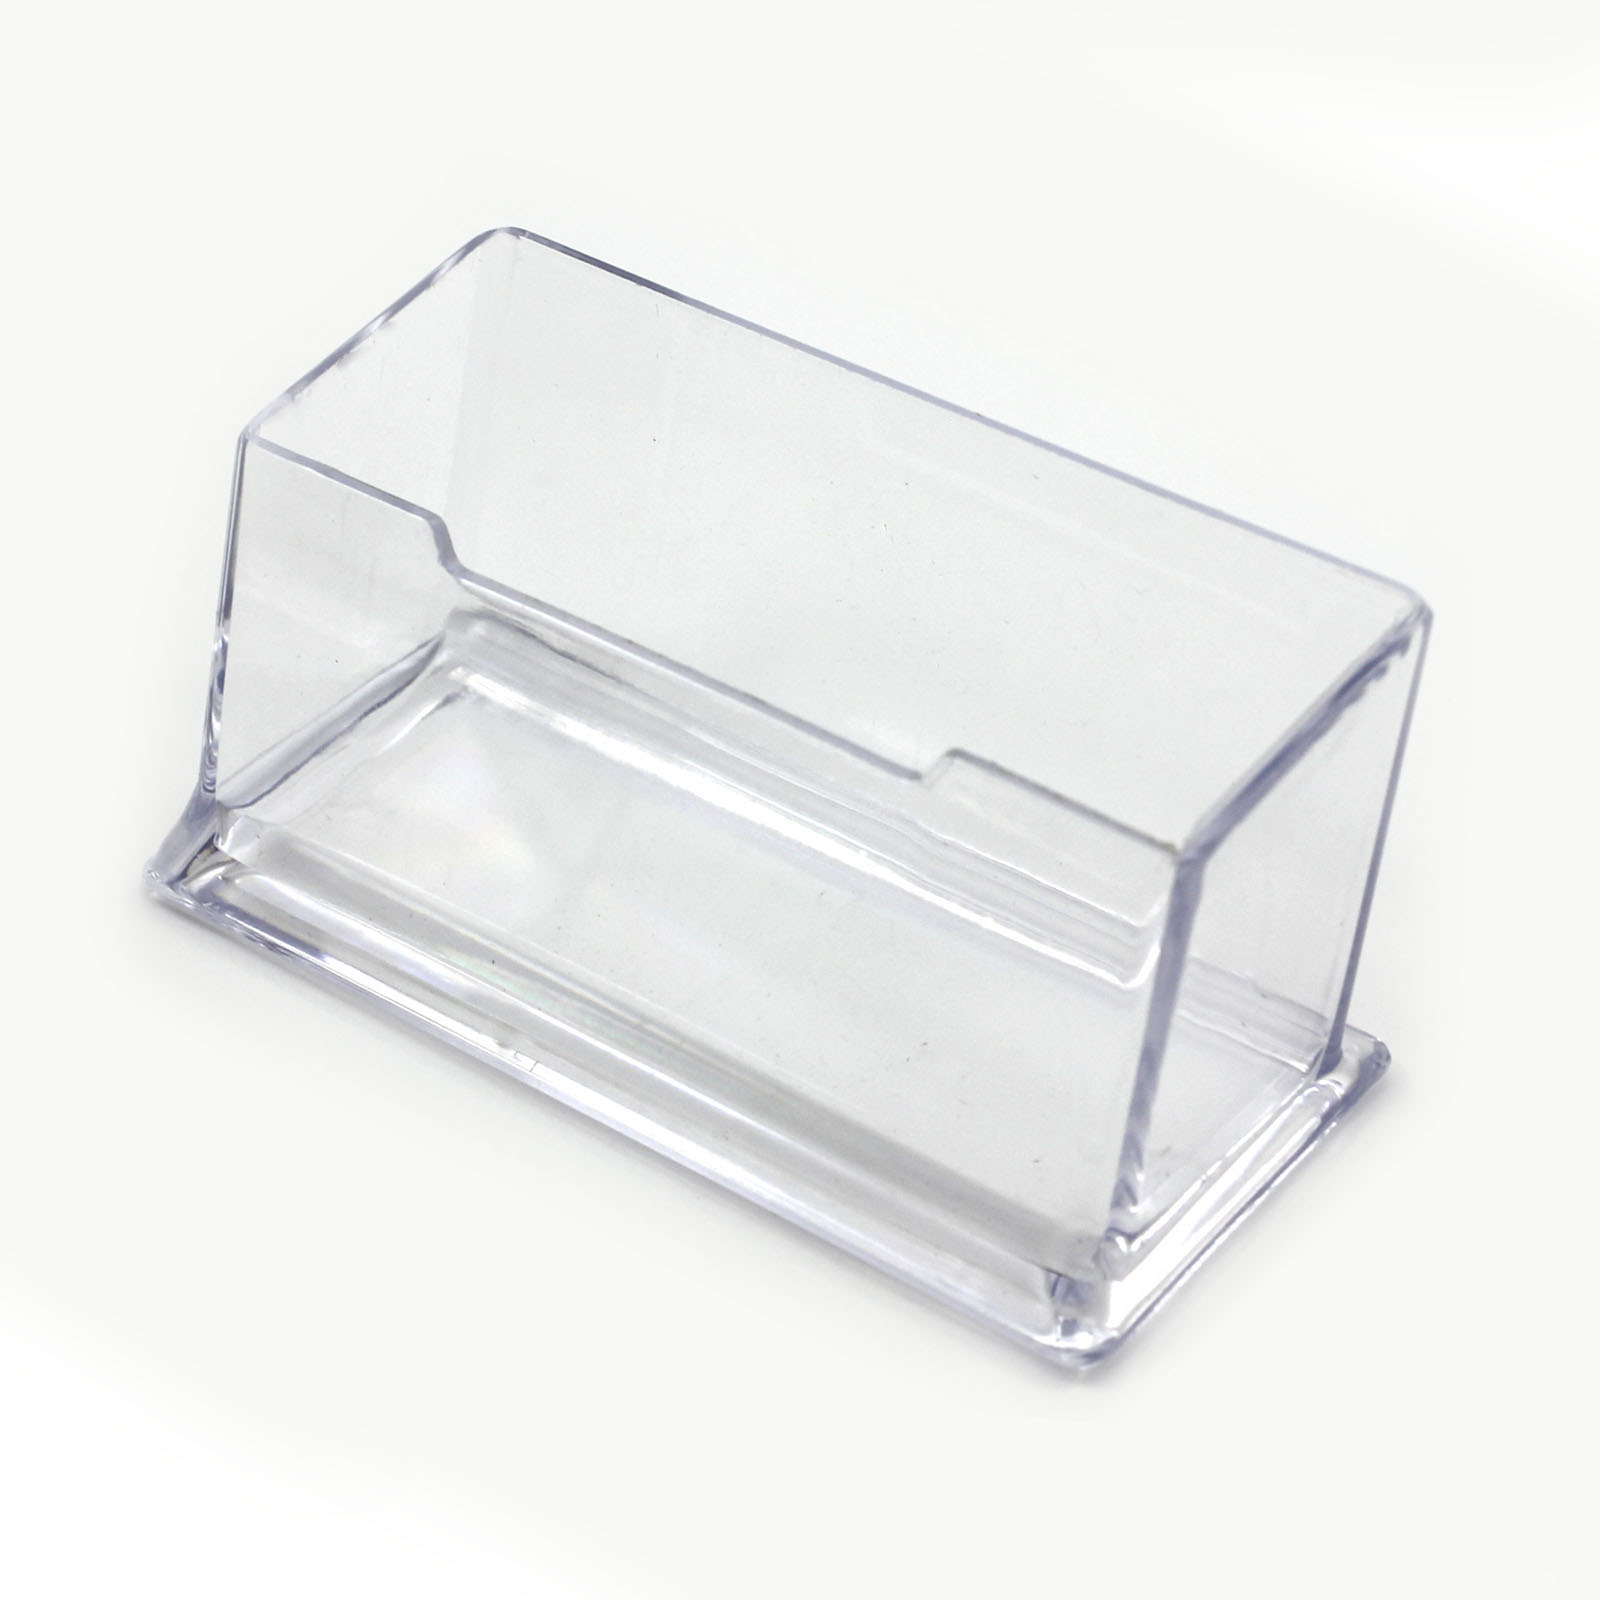 Acrylic Business Card Holder Display Image Collections Business